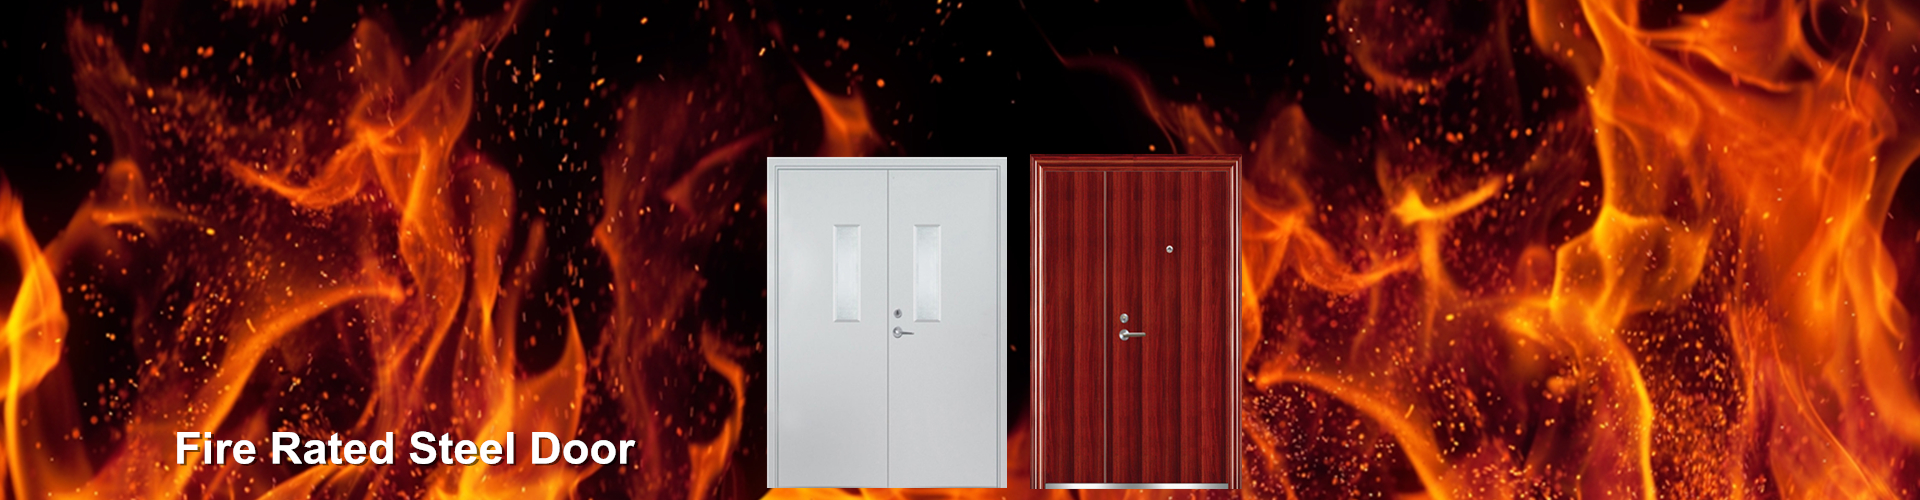 fire rated steel doors-Qi'an